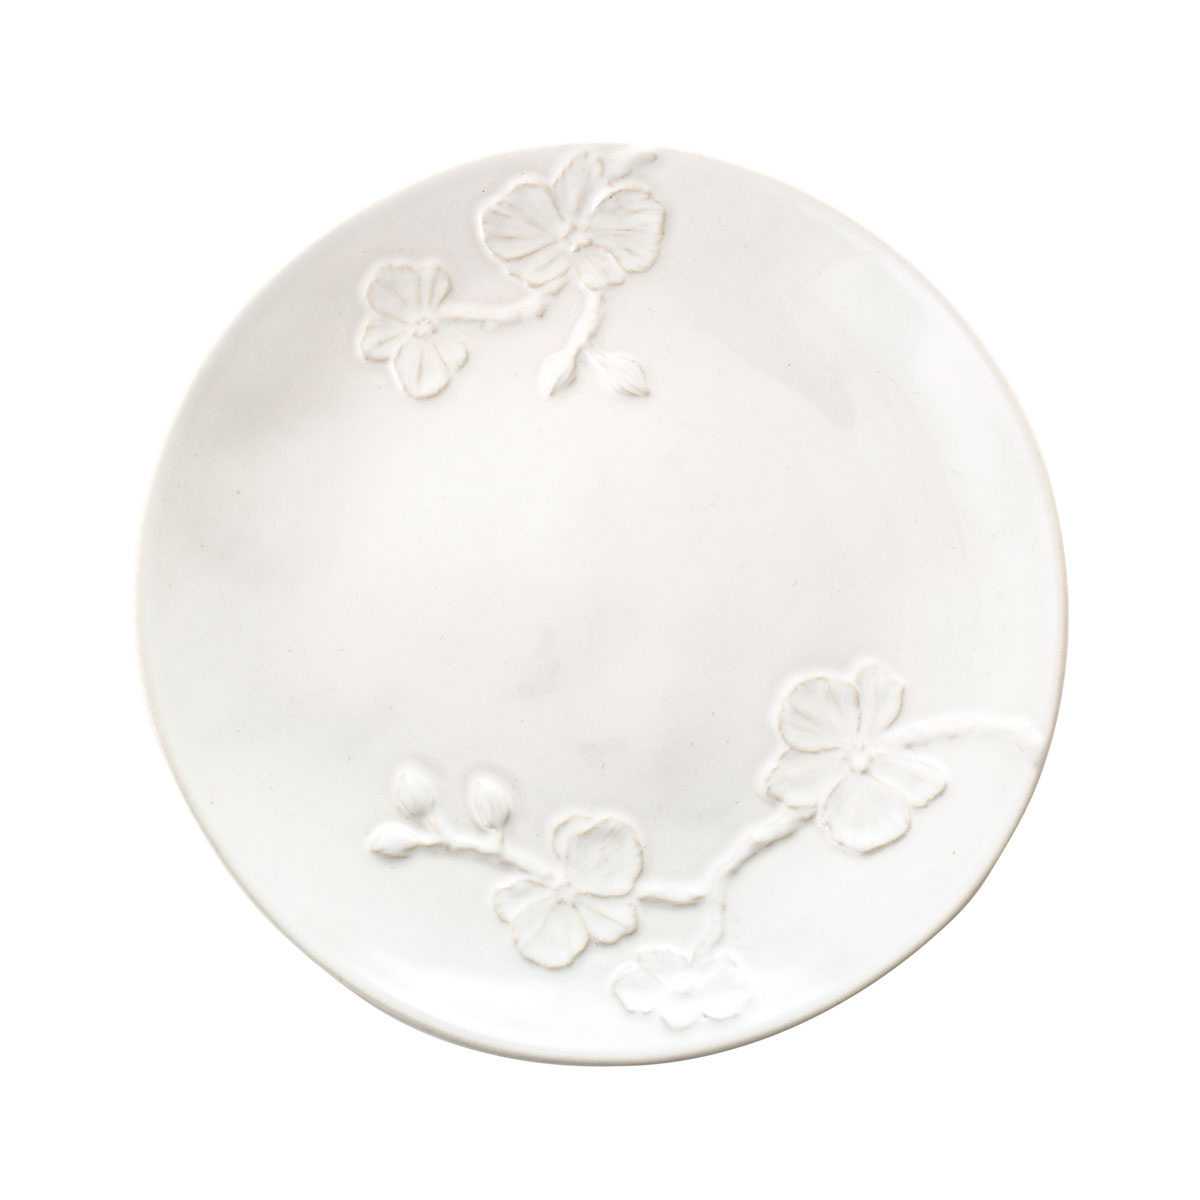 Michael Aram White Orchid Stoneware Salad Plate, Single